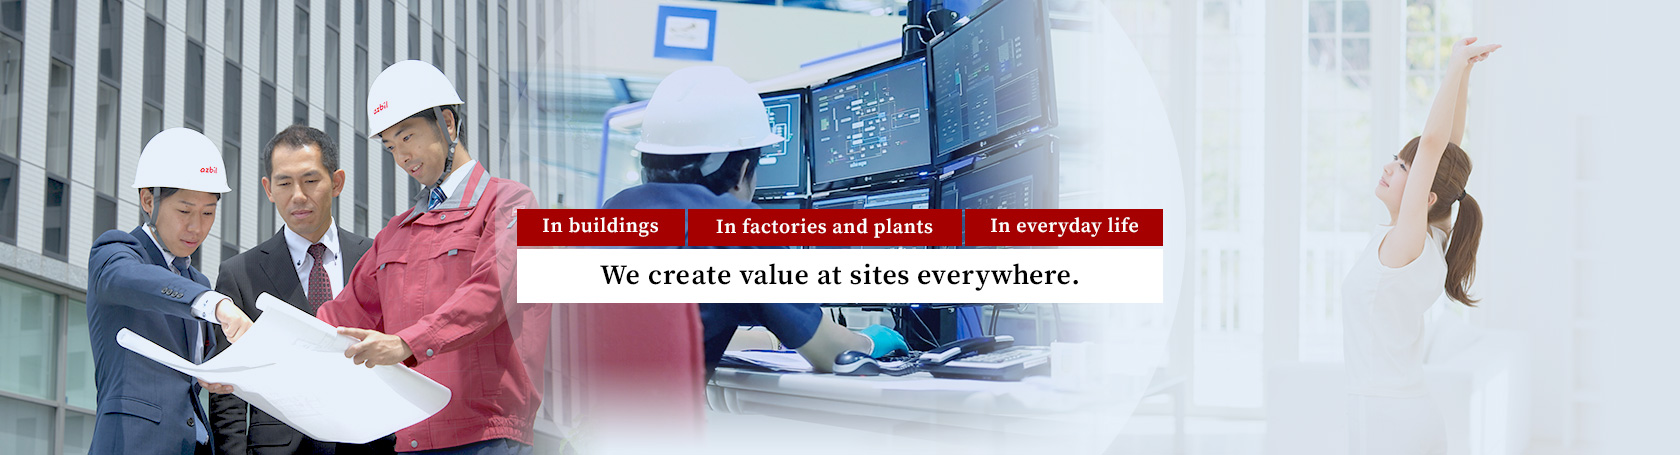 We create value at sites everywhere.